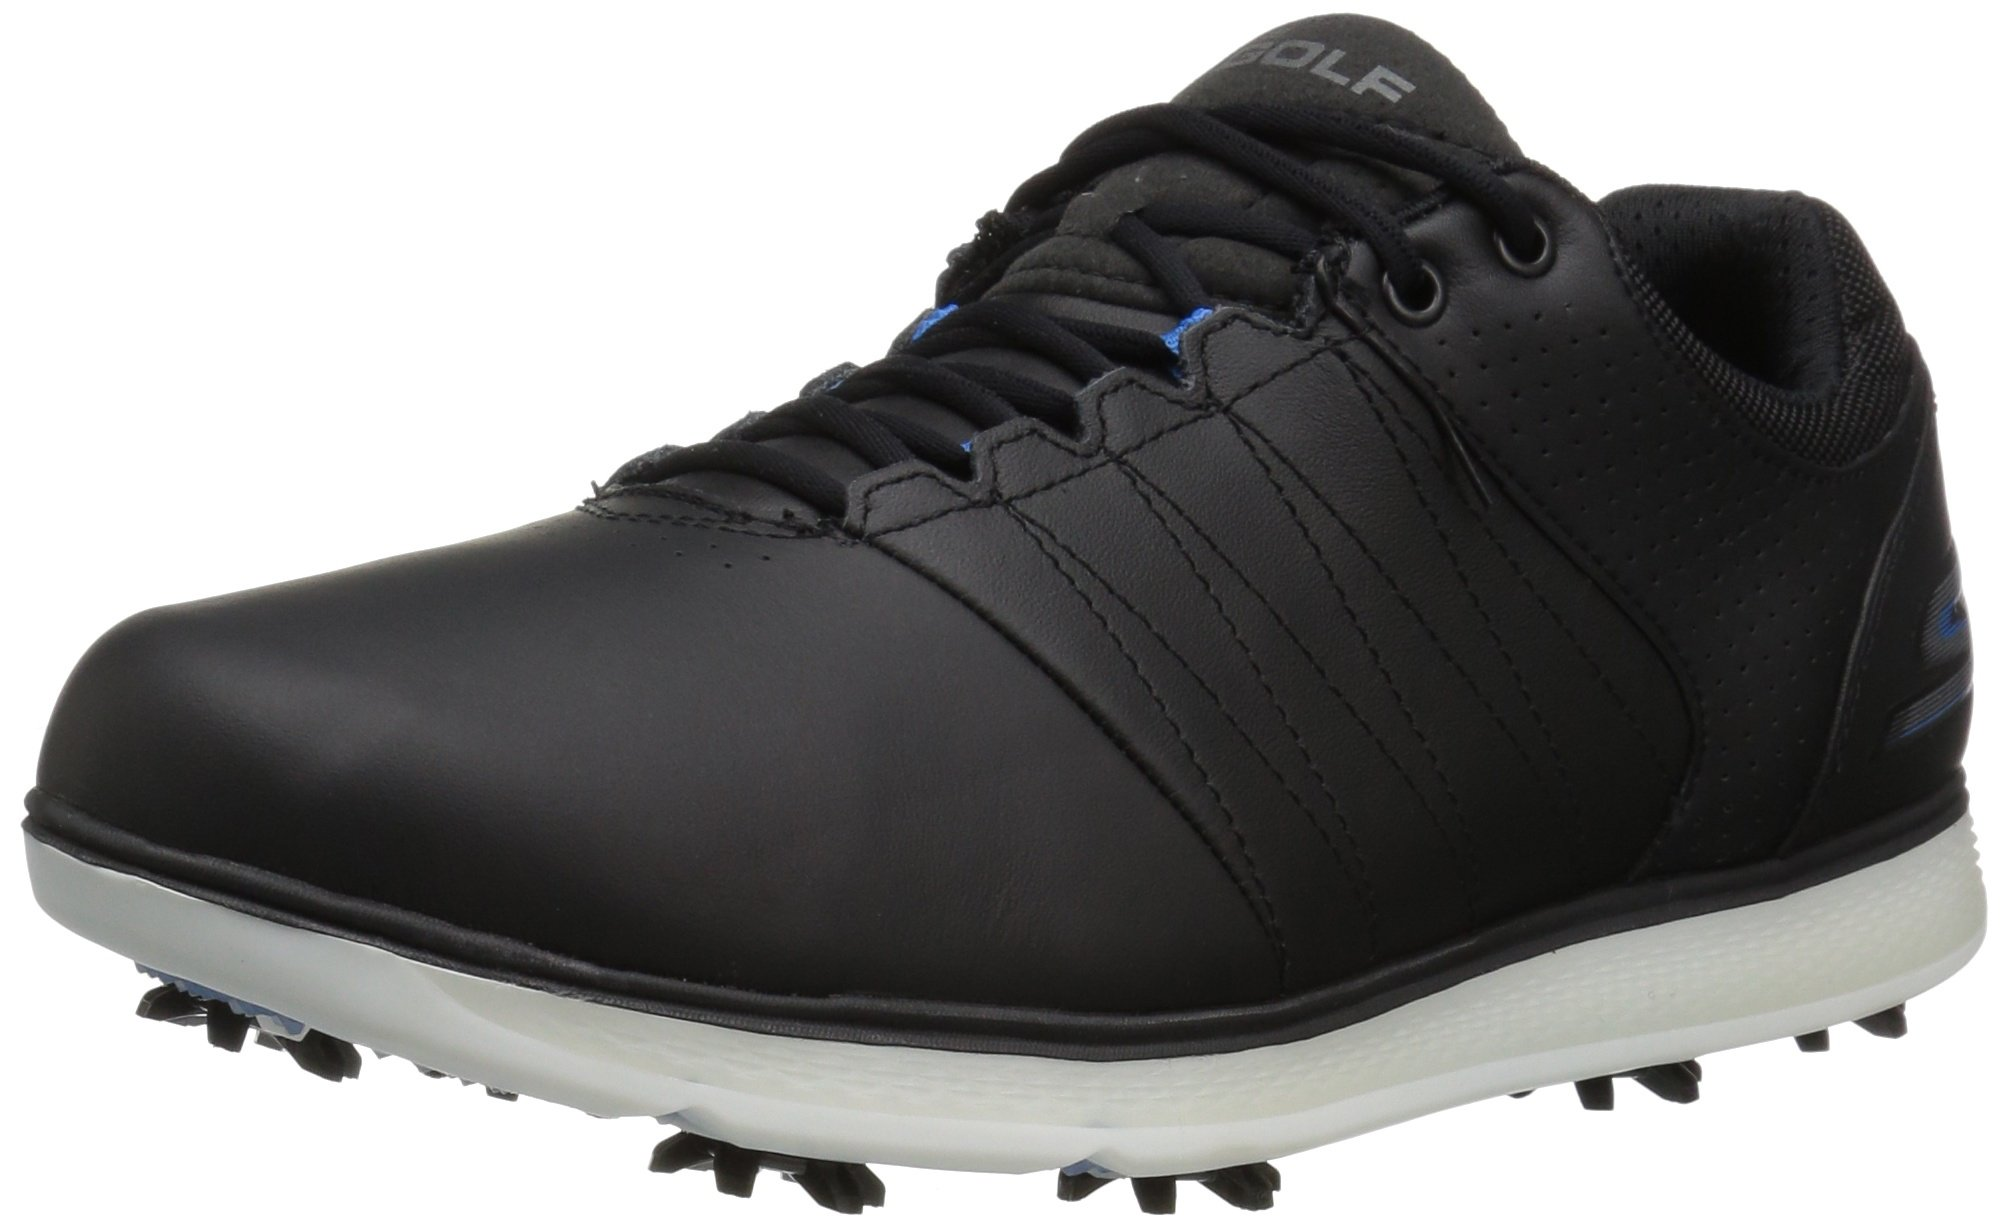 Skechers Performance Men's Go Golf Pro 2 Golf Shoe,Black/Blue,9 M US by Skechers